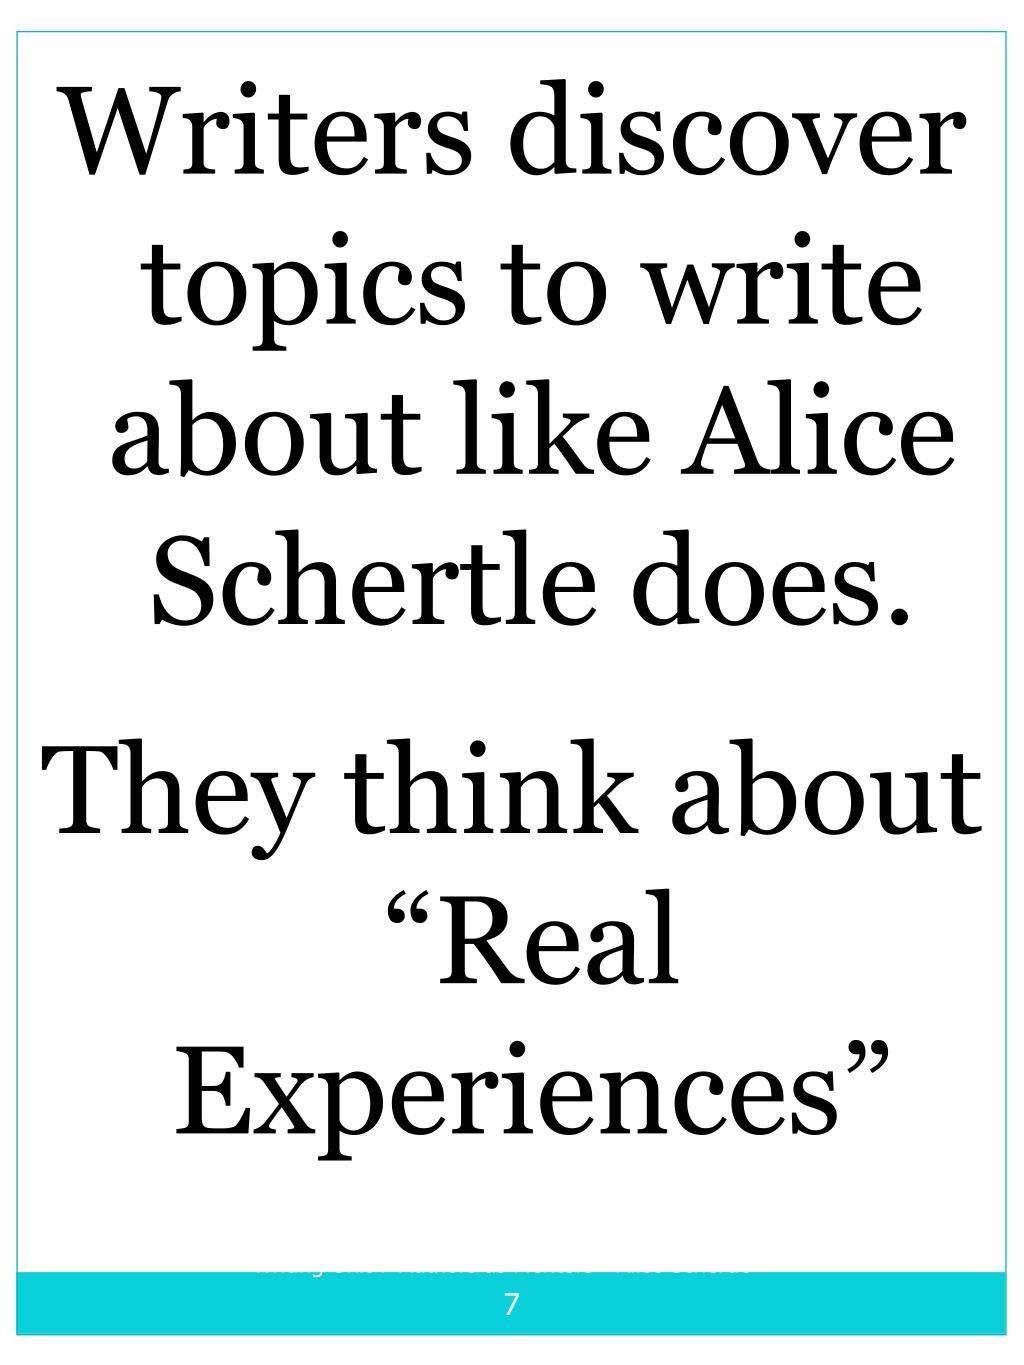 Writers discover topics to write about like Alice